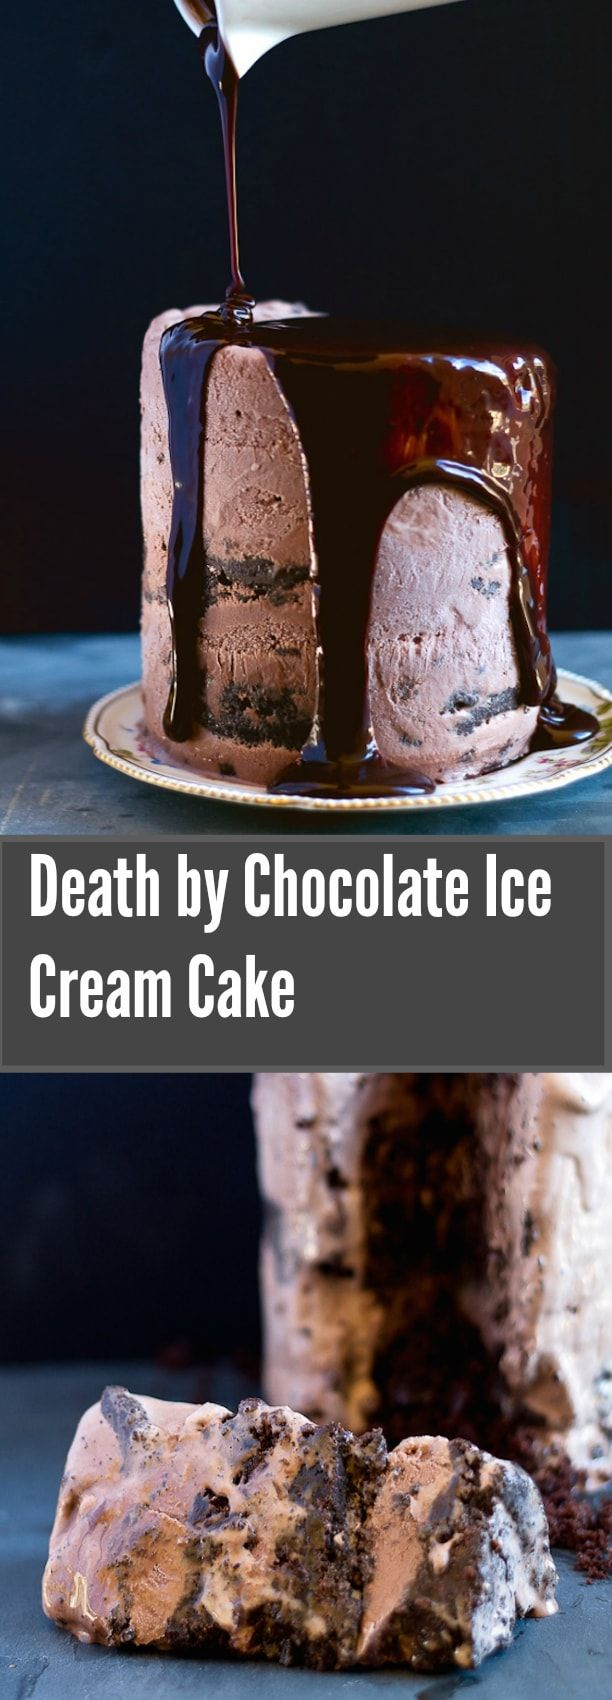 Death By Chocolate Ice Cream Cake has layers of brownie, chocolate ice cream, and chocolate crunchies, and then smothered in a river of hot fudge sauce. | Young, Broke and Hungry.